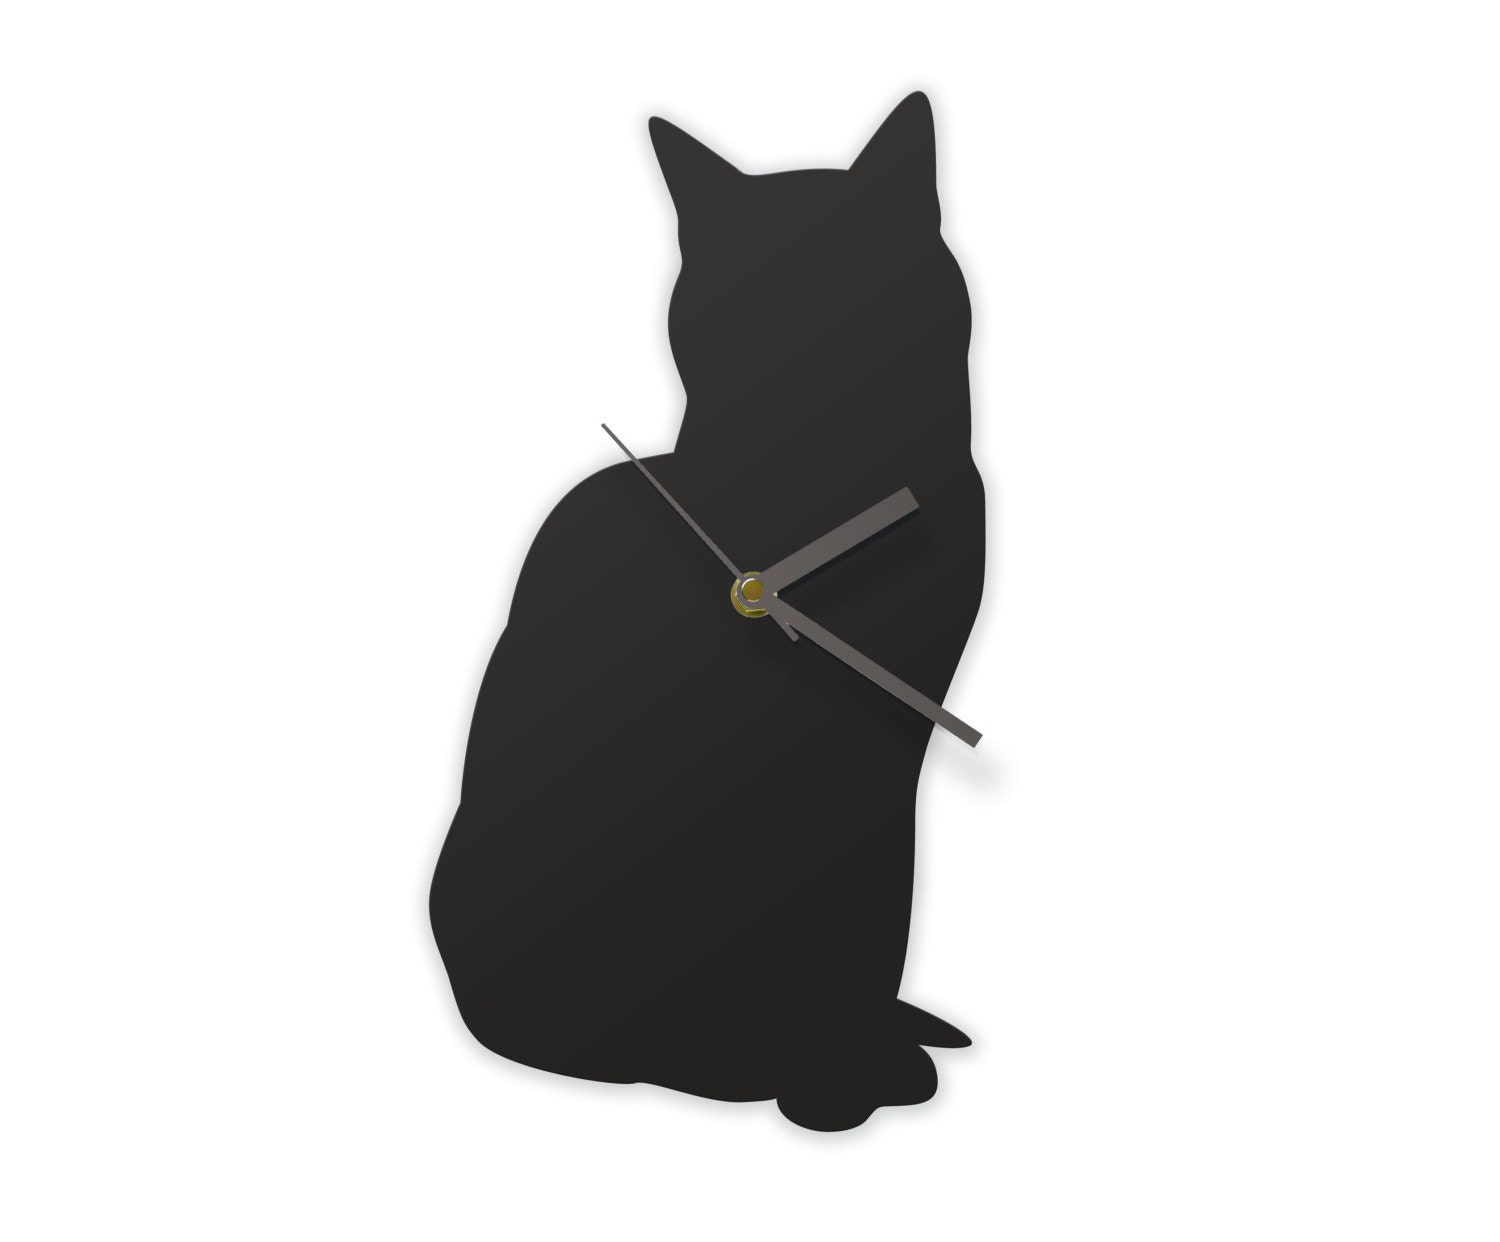 Wall clocks studio jolyon yates sitting cat clock a cat that can tell the time amipublicfo Gallery